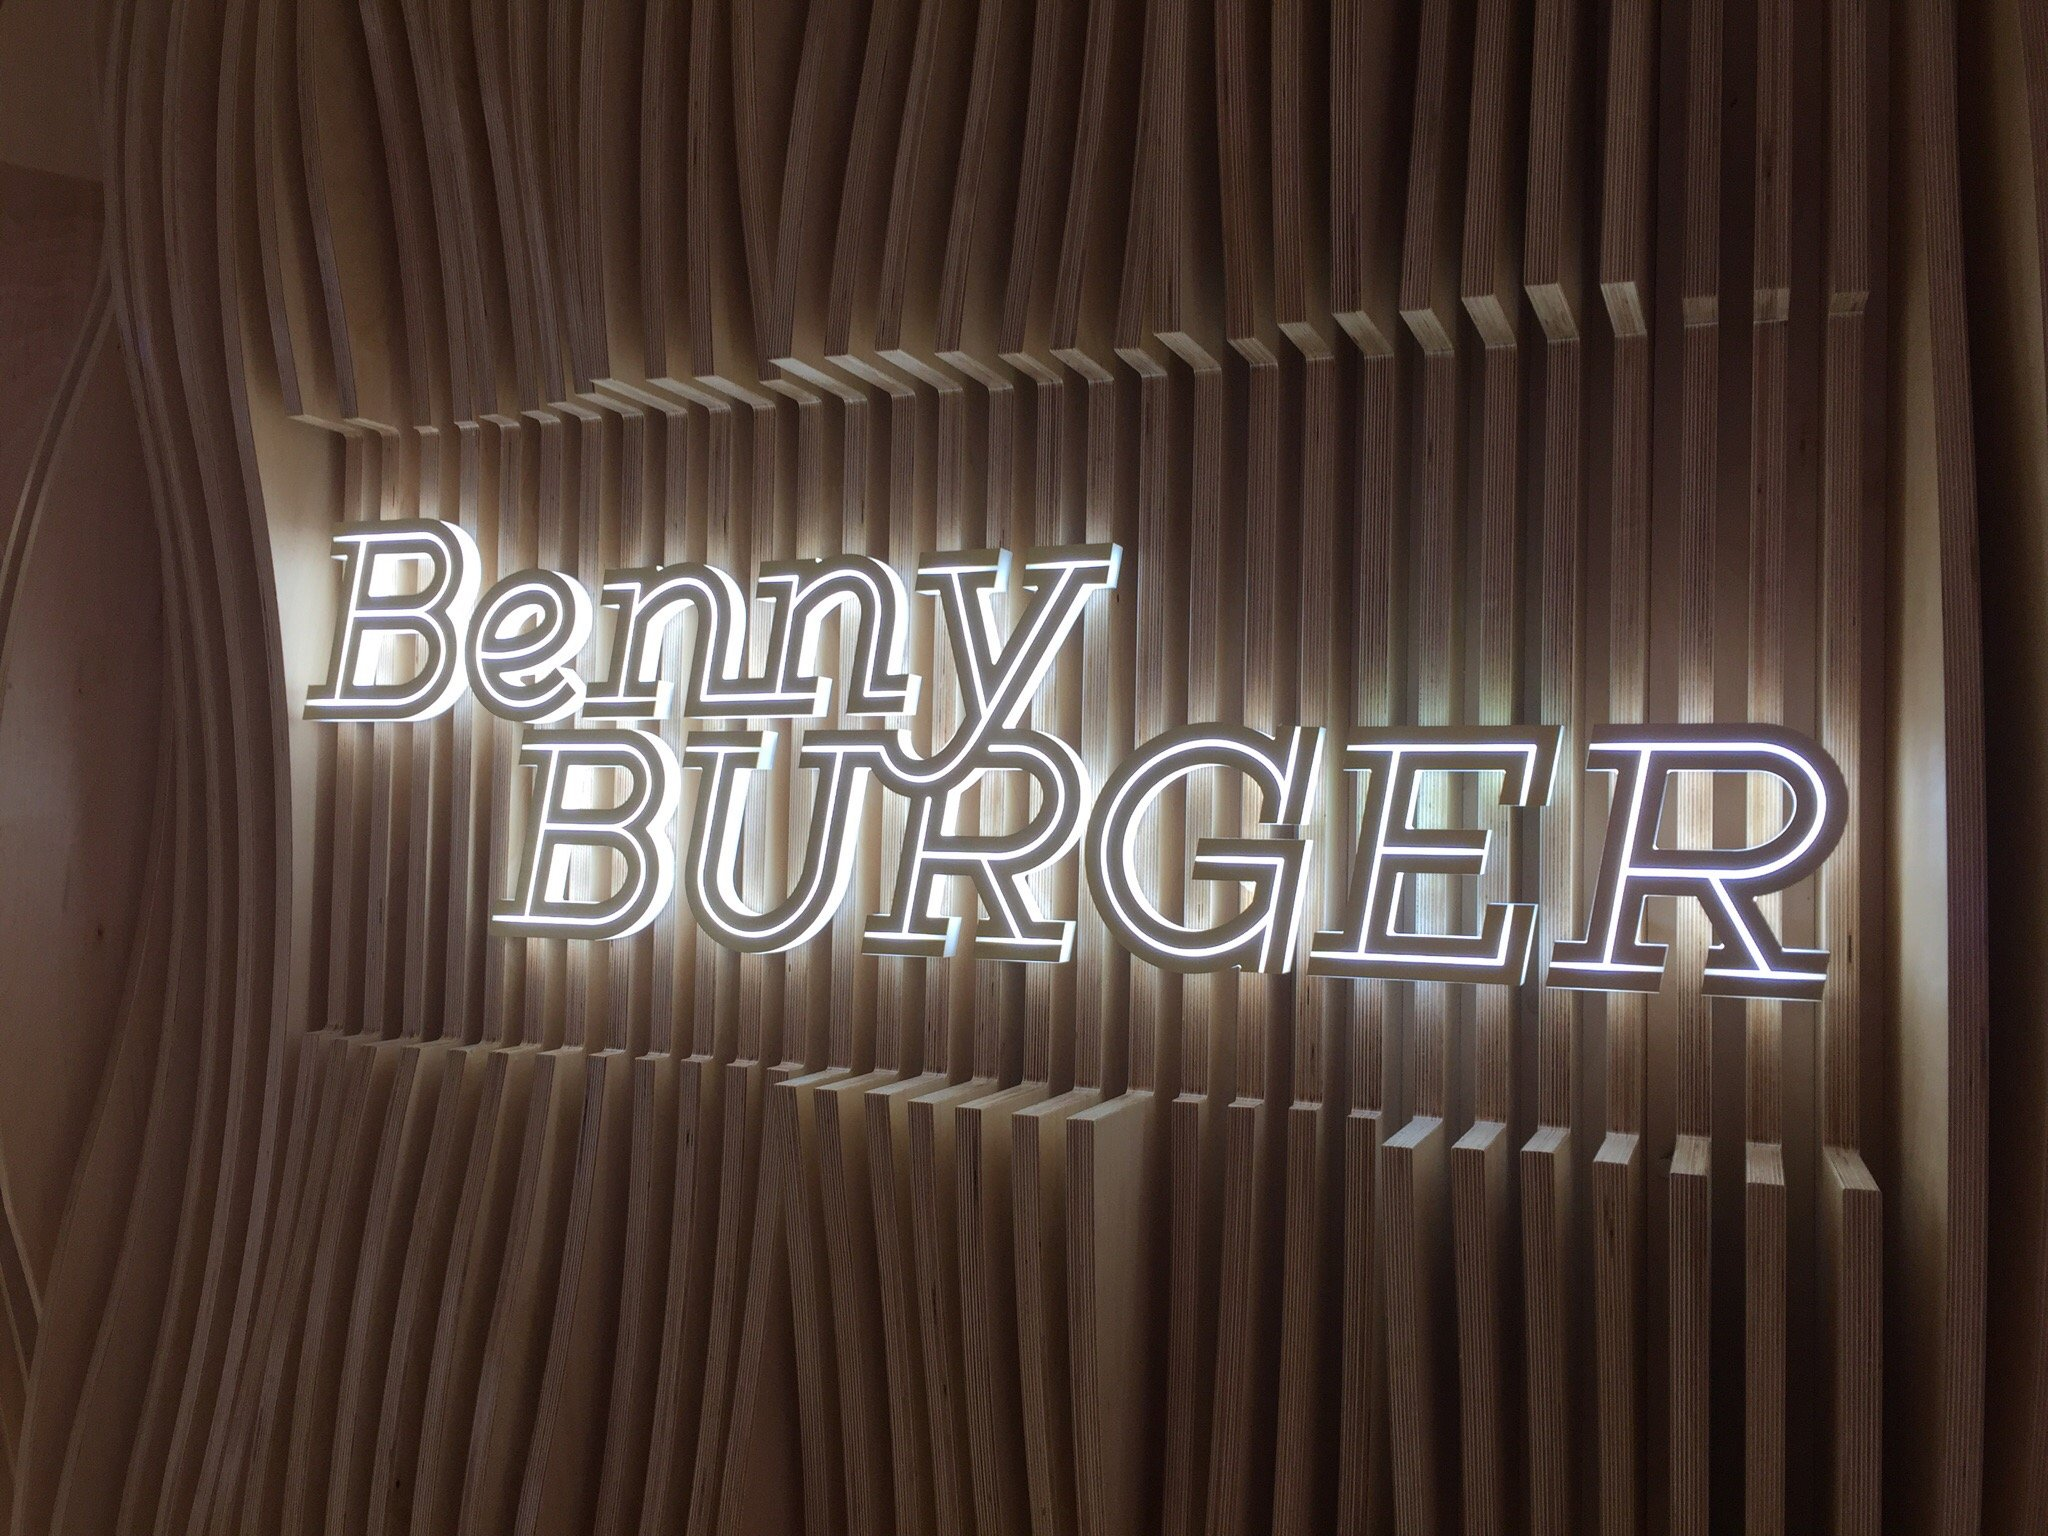 Hotel near domastic airport hotel hotel near by airport veg hotel - Benny Burger